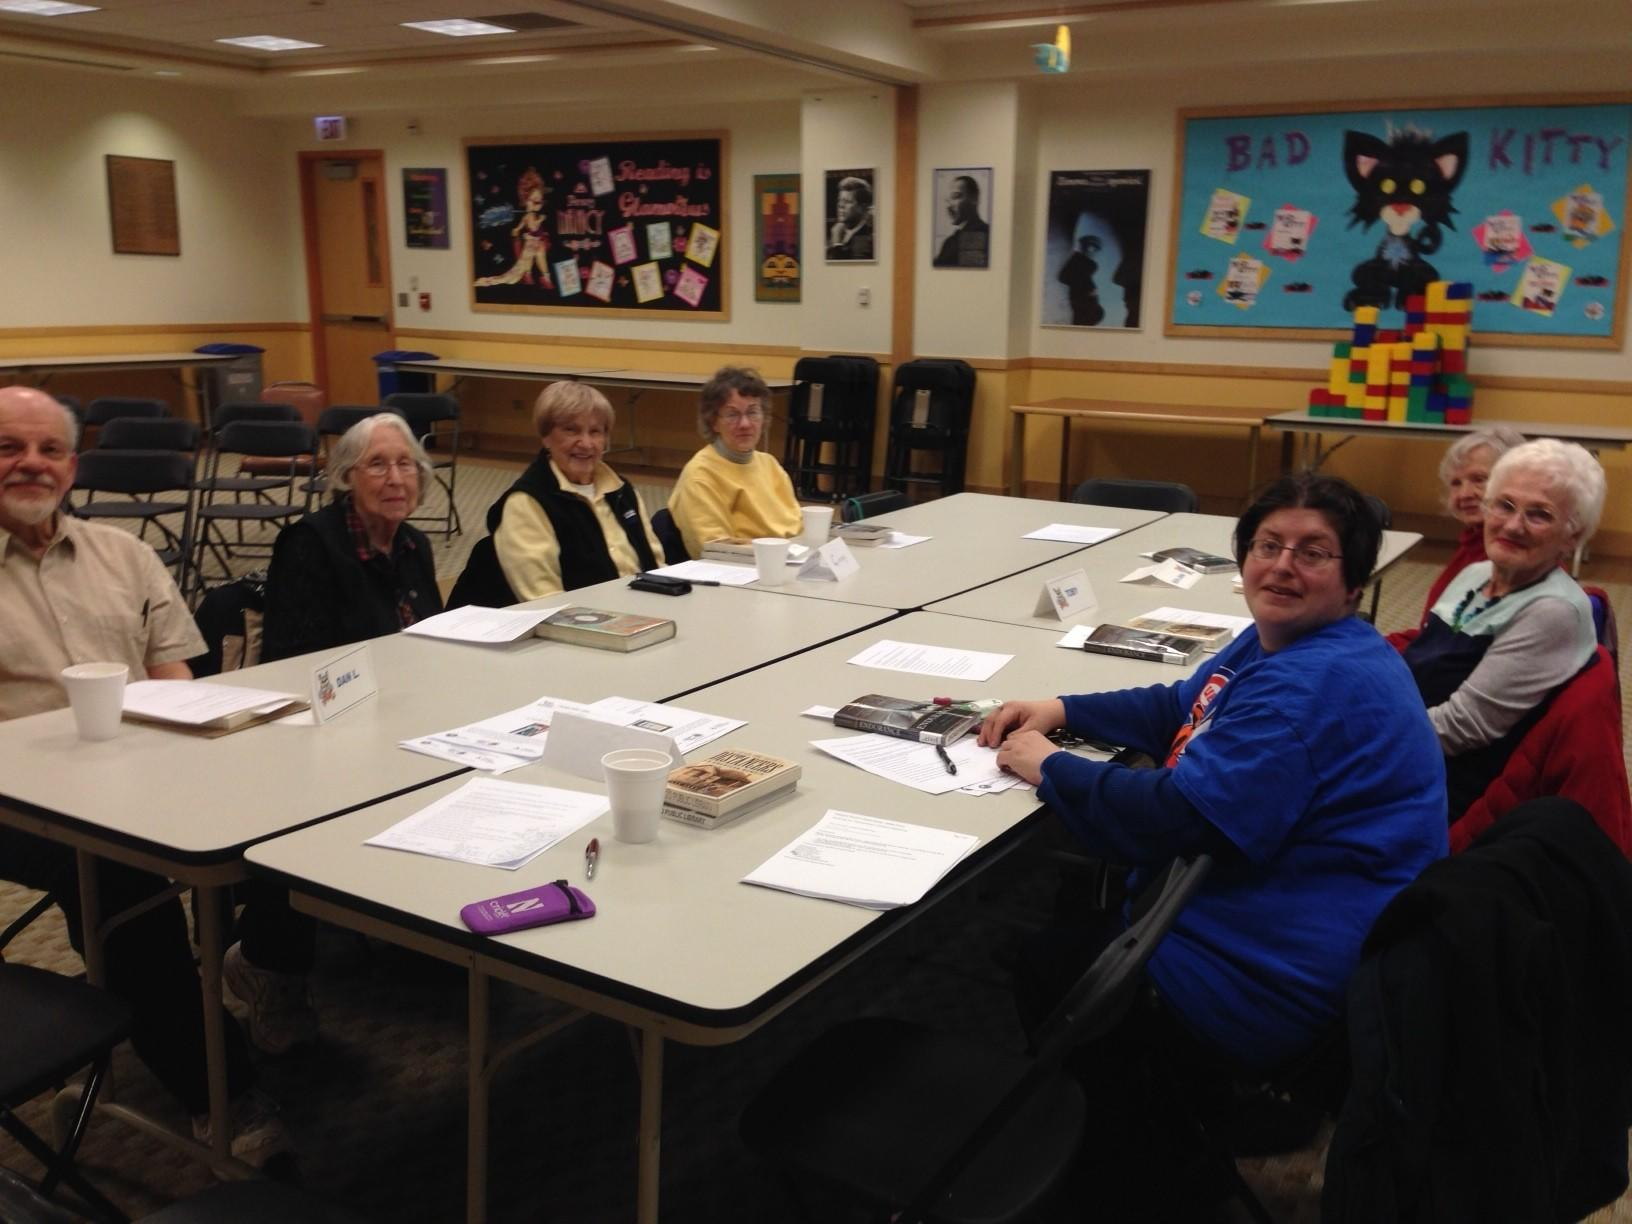 The Austin-Irving Book Club meets on the third Wednesday of each month at the Austin-Irving branch of the Chicago Public Library.